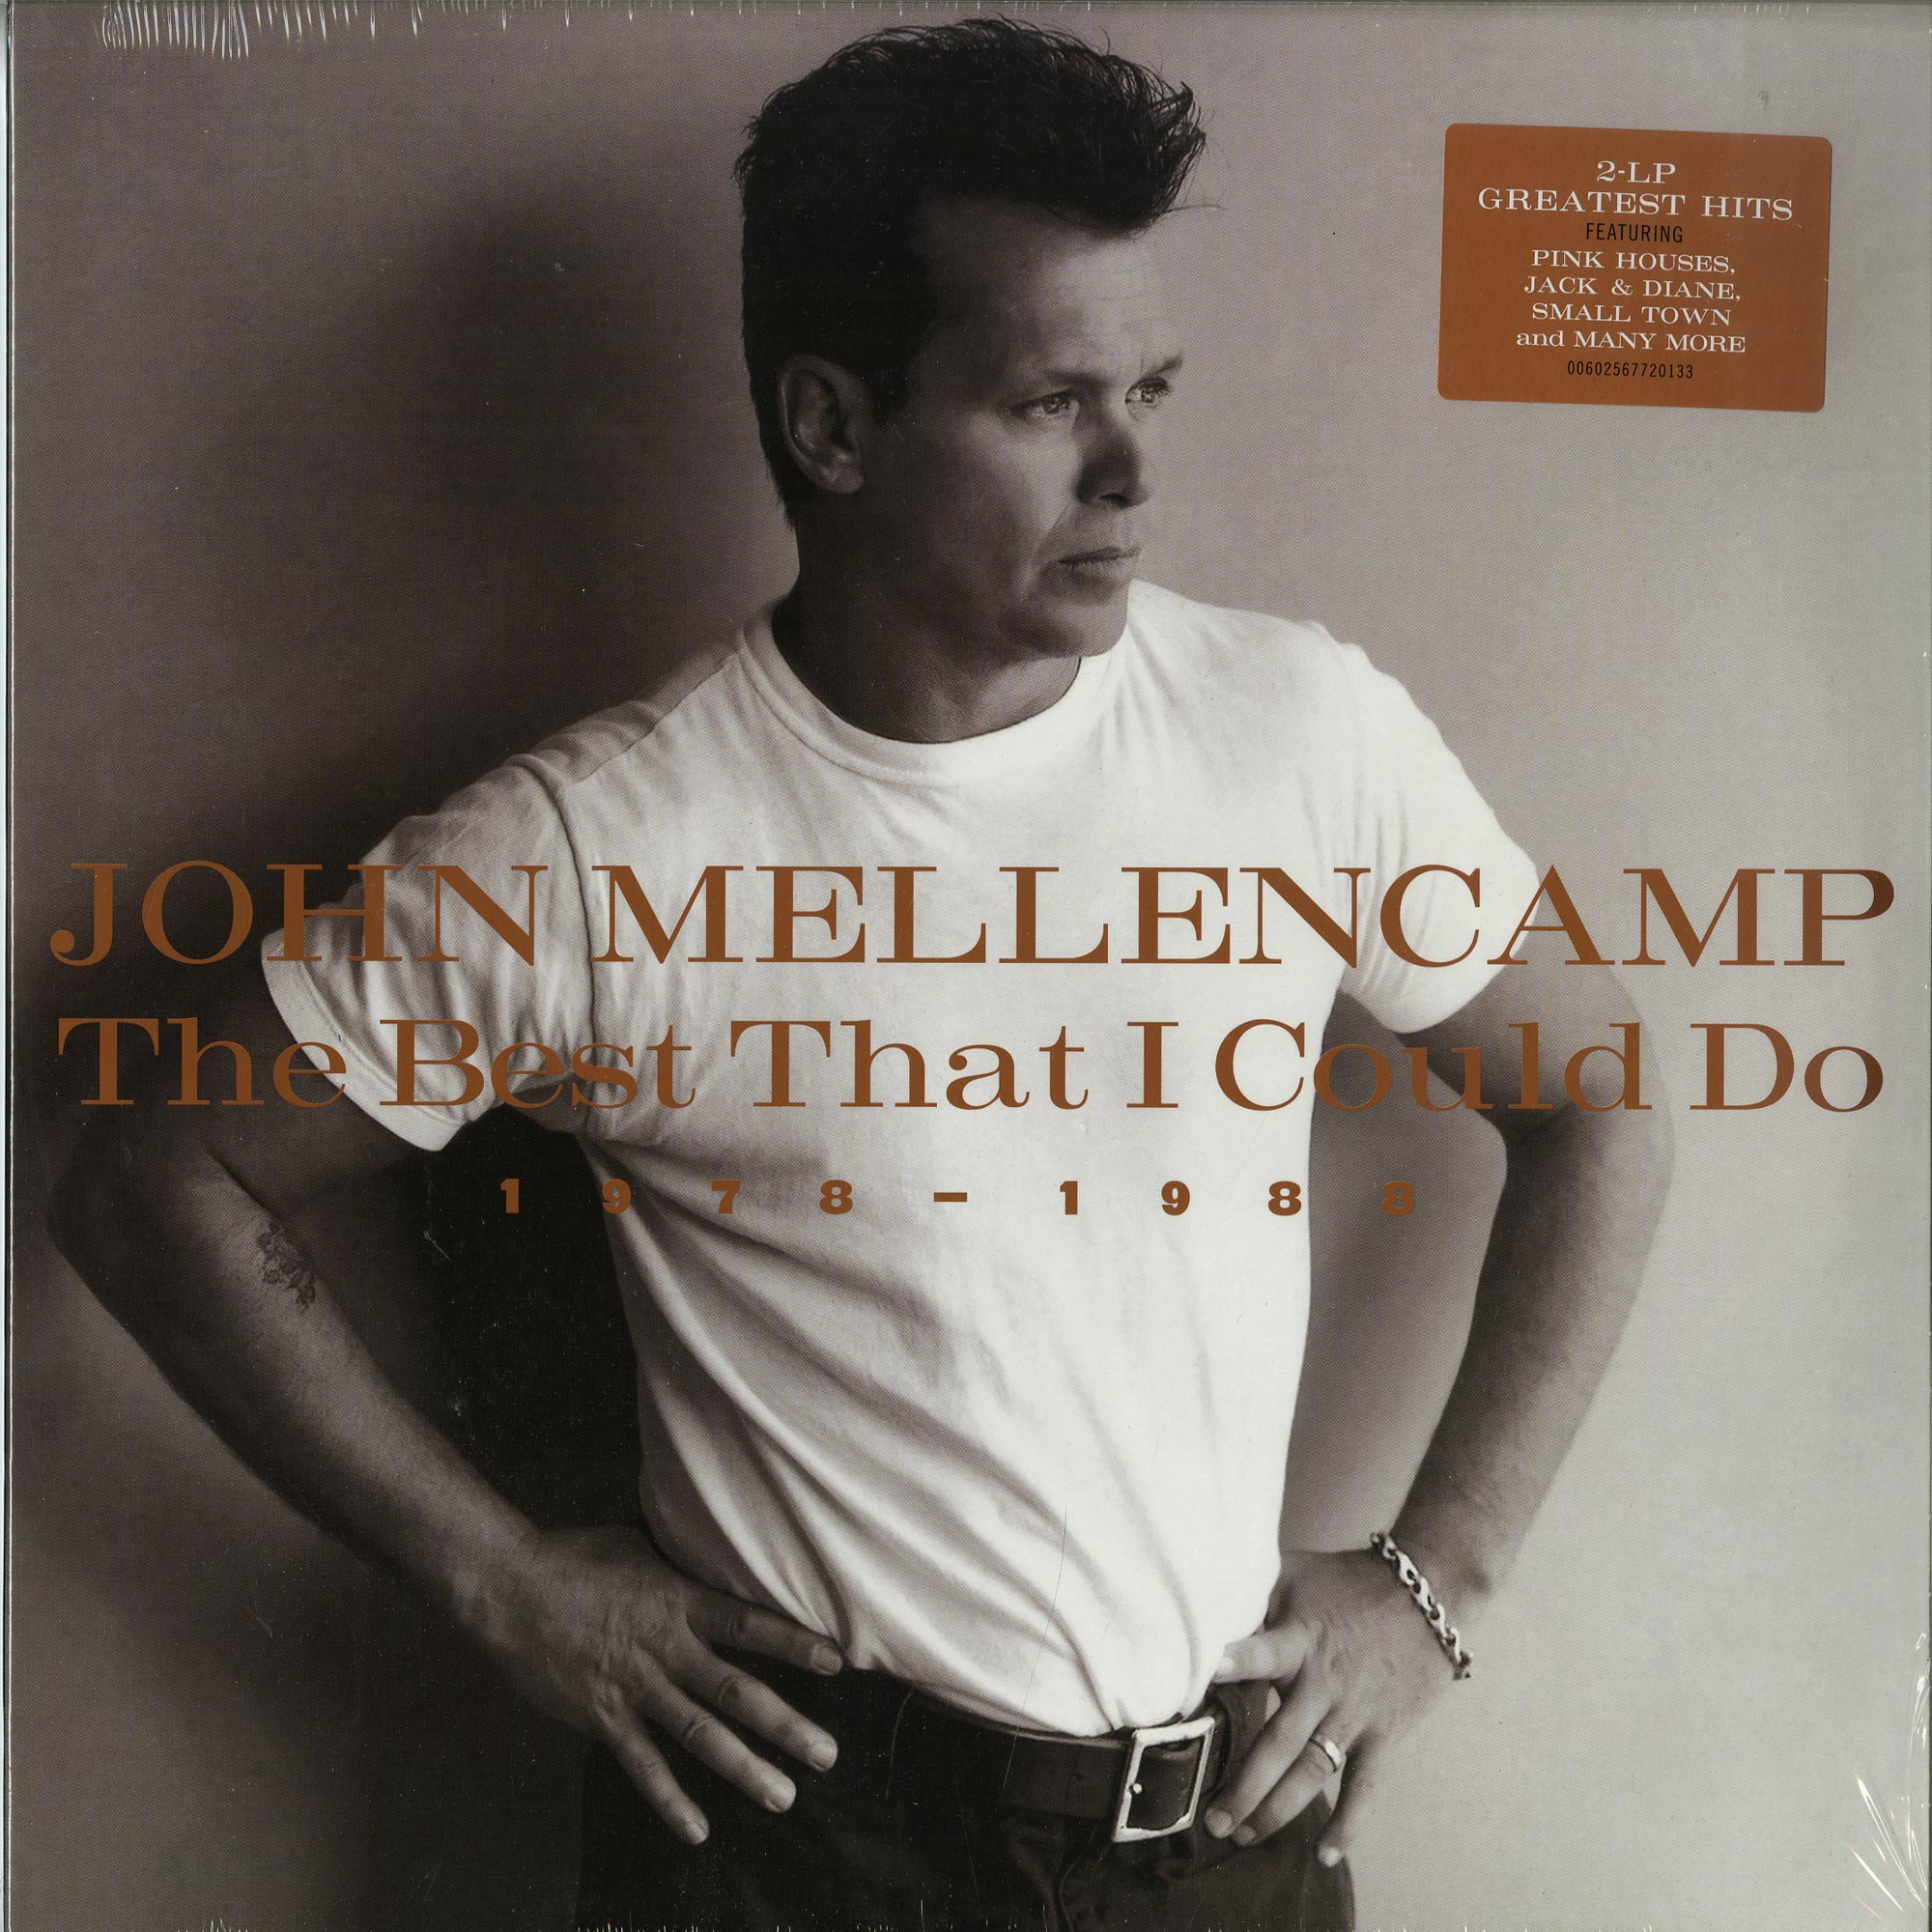 John Mellencamp - THE BEST THAT I COULD DO 1978-88